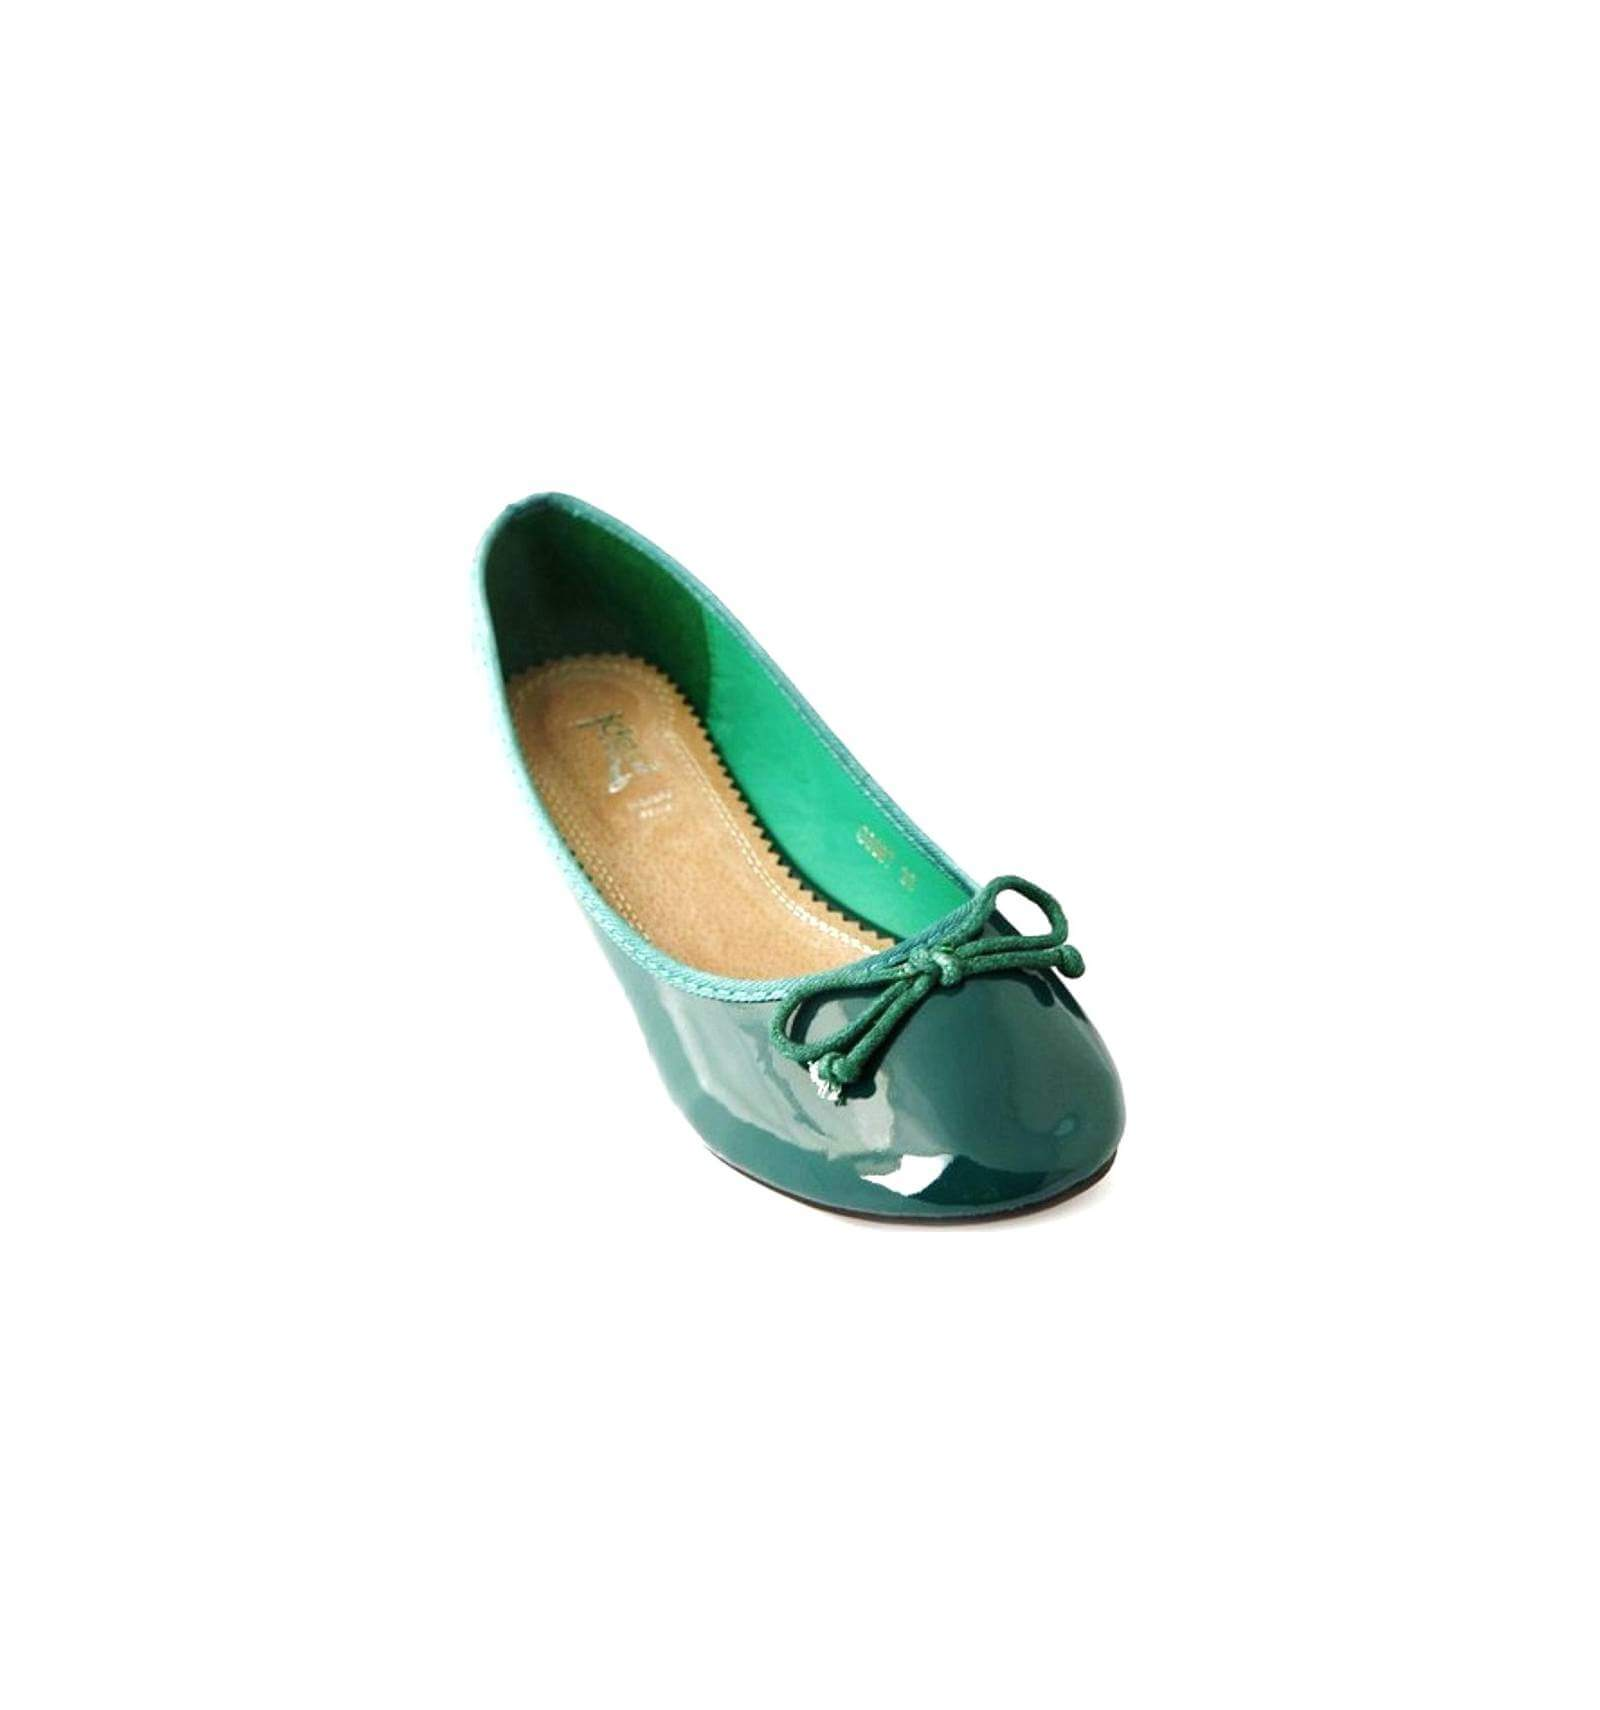 chaussures vernis vertes green sandals. Black Bedroom Furniture Sets. Home Design Ideas